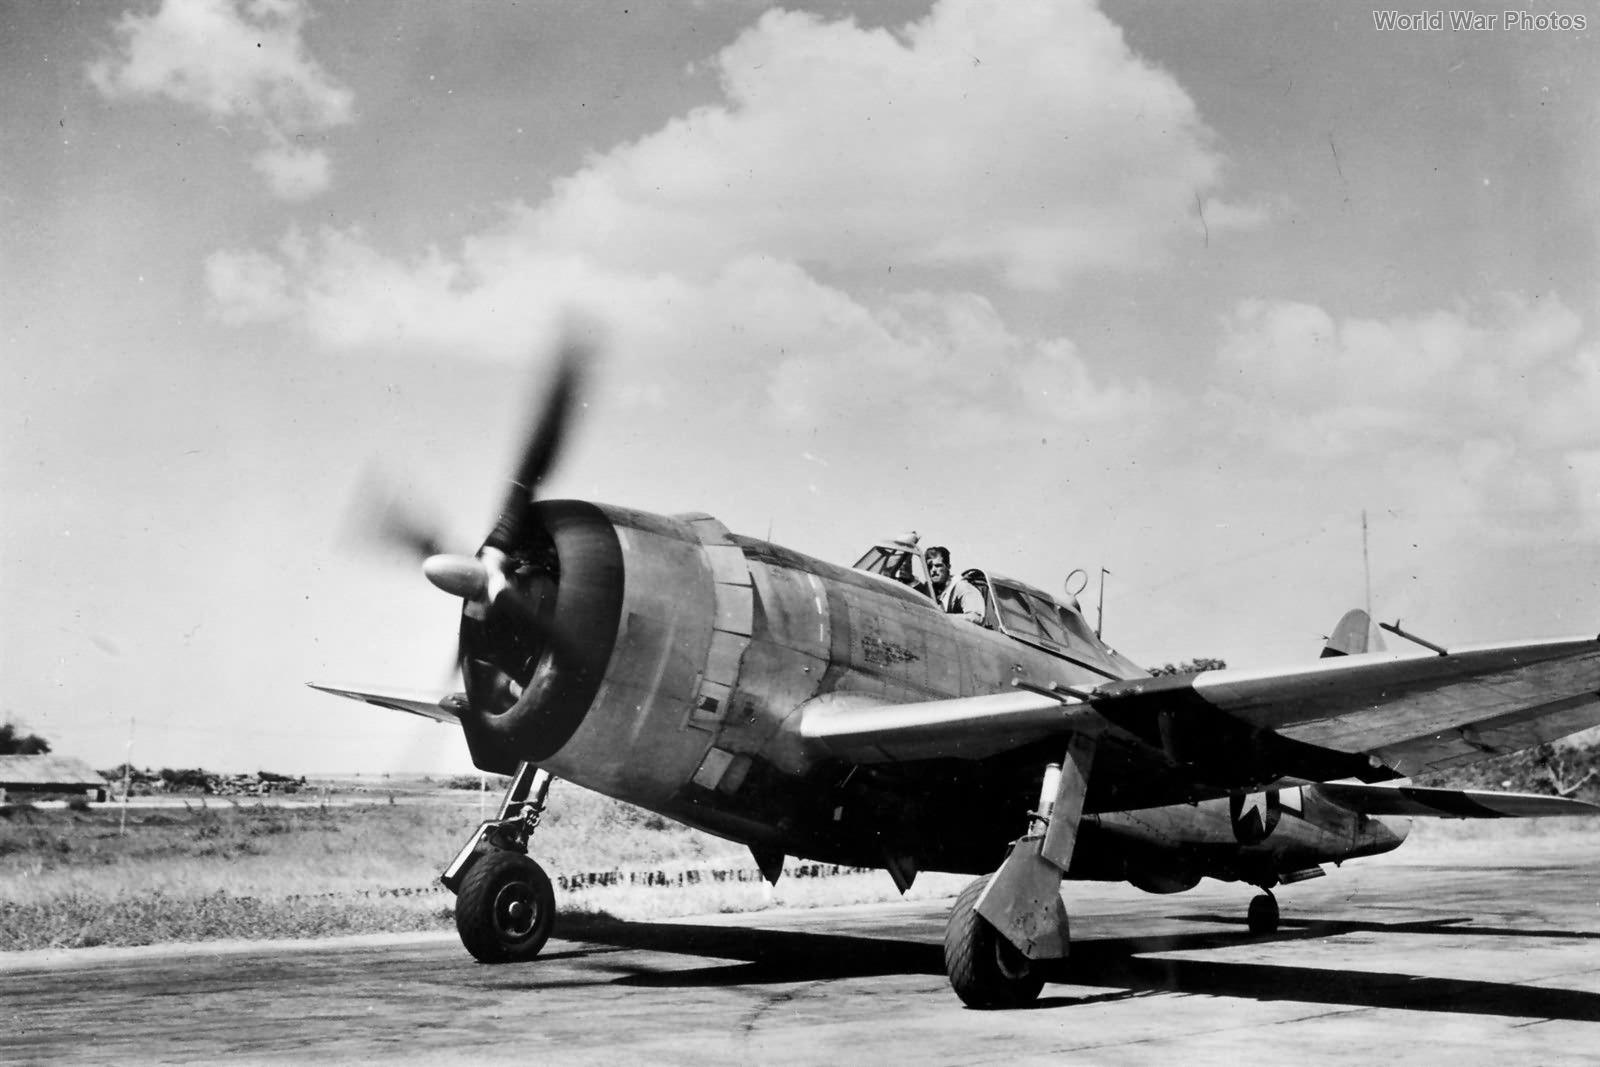 Lt LF Mullins 1st Air Commando P-47 at Asansol India in 1944